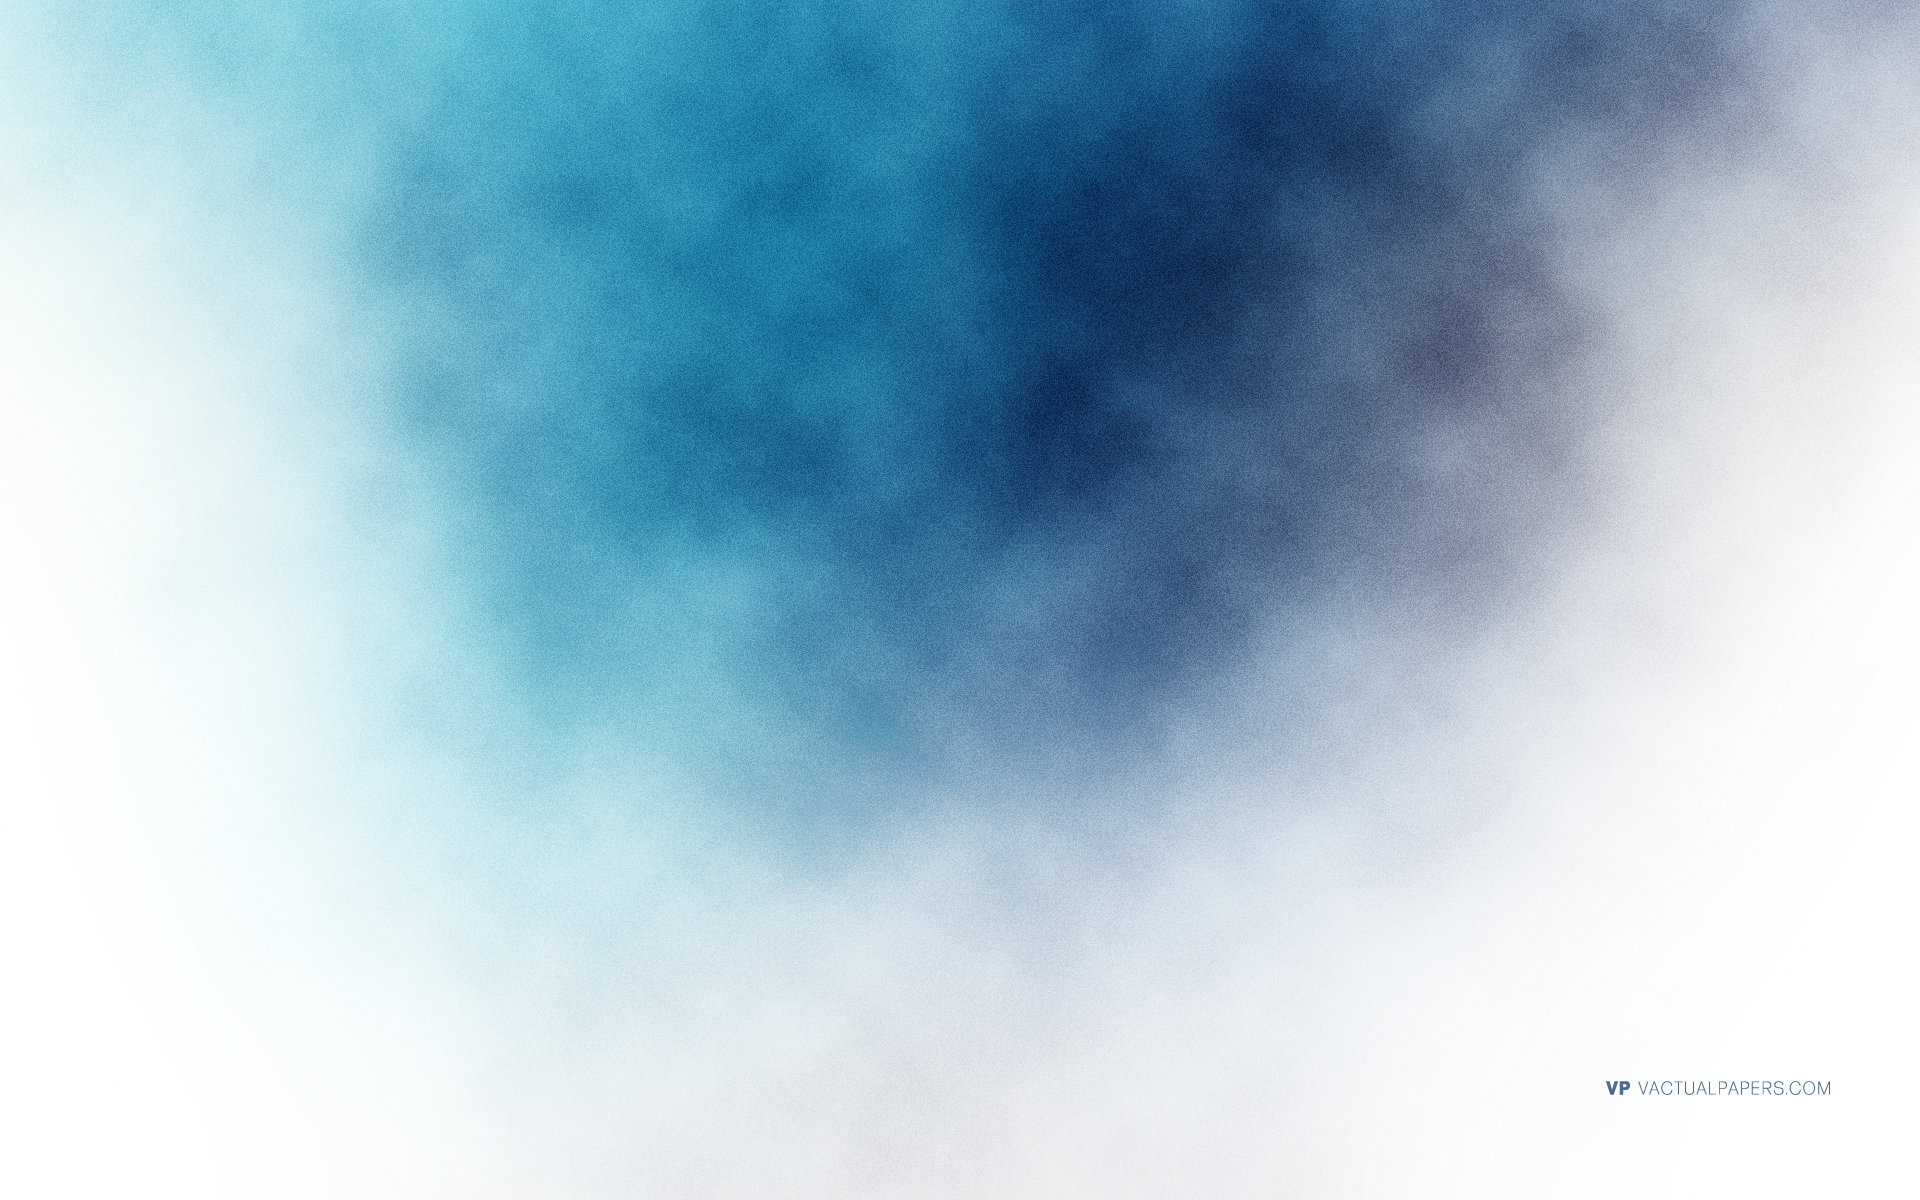 Blurry Background With Textured Clouds HD Wallpaper No 001